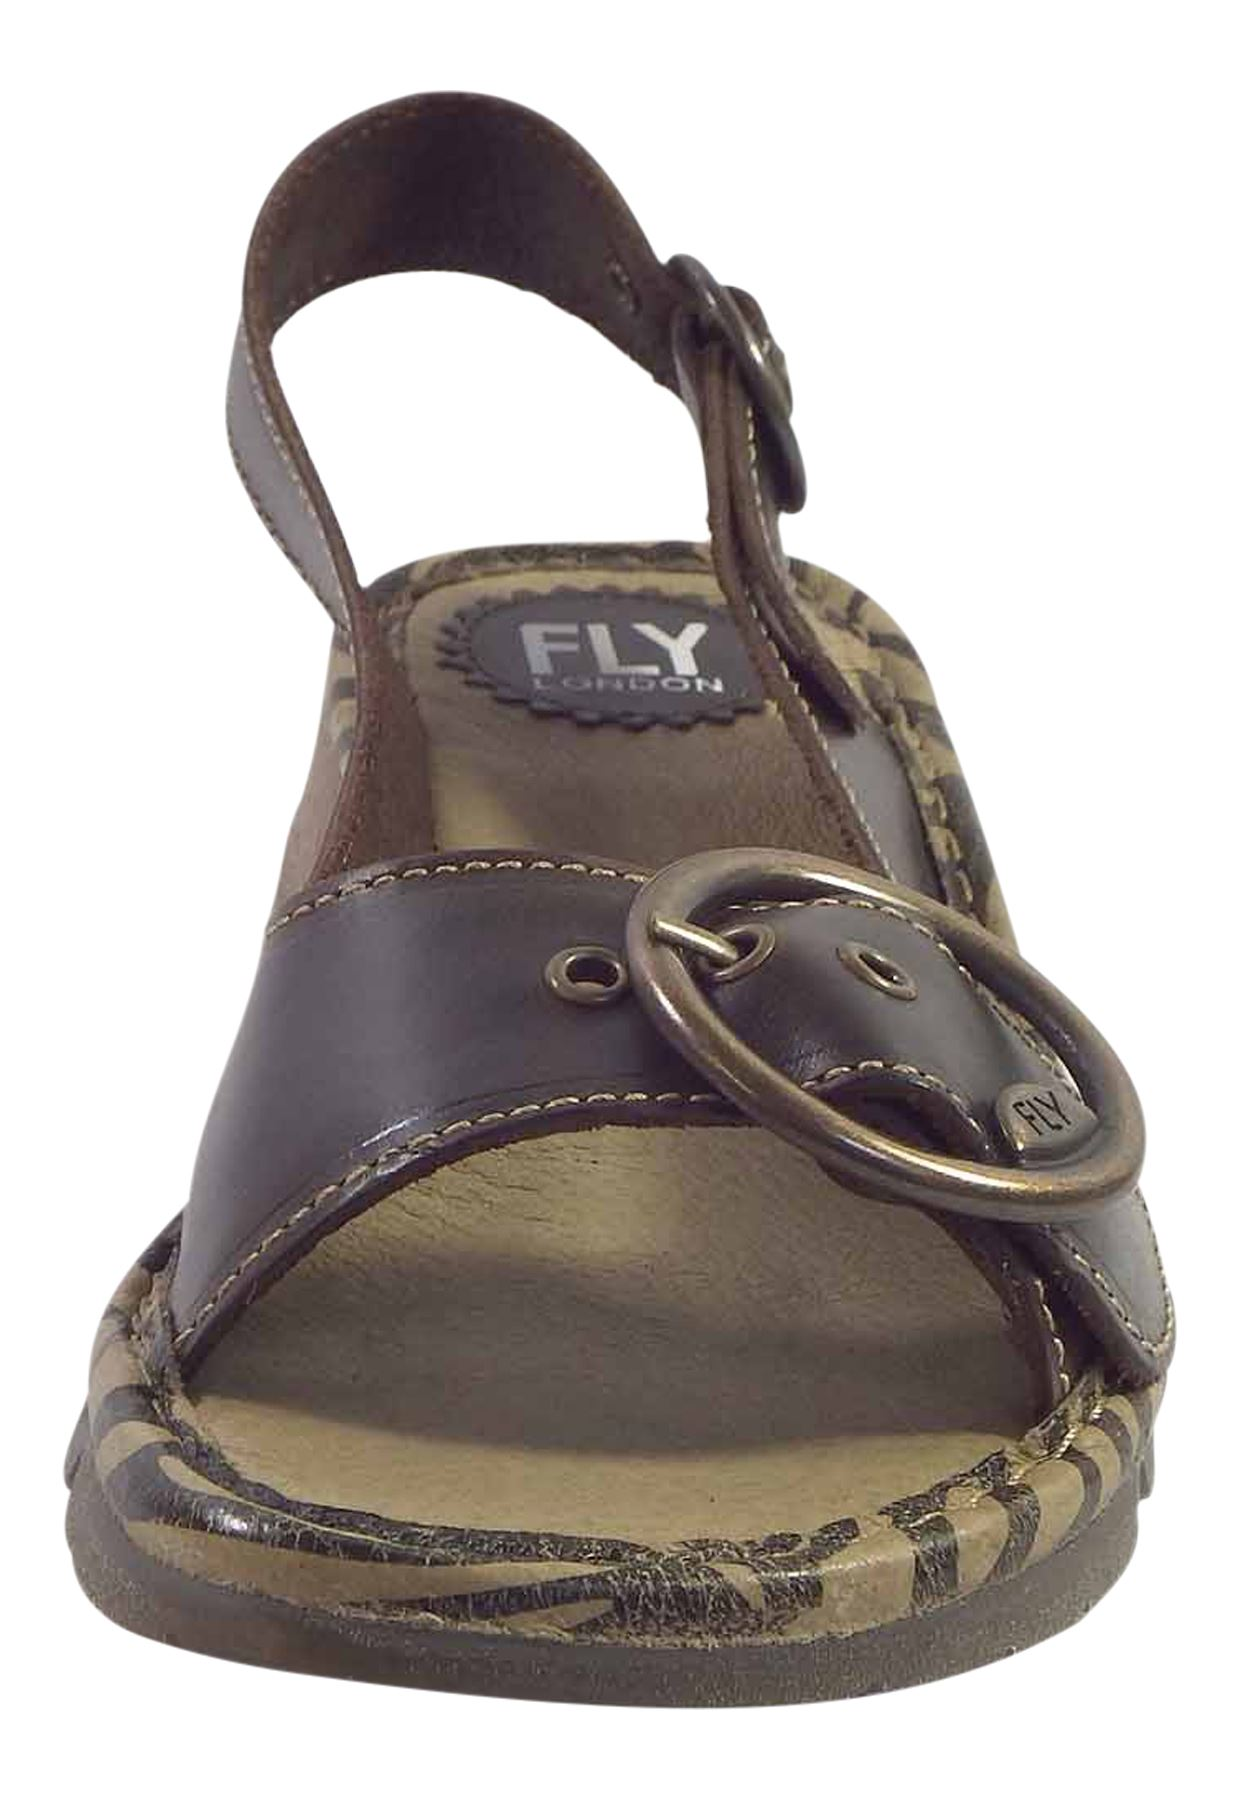 Fly-London-Ladies-TRAM723FLY-Lo-Wedge-Slingback-Summer-Sandals-Leather thumbnail 35